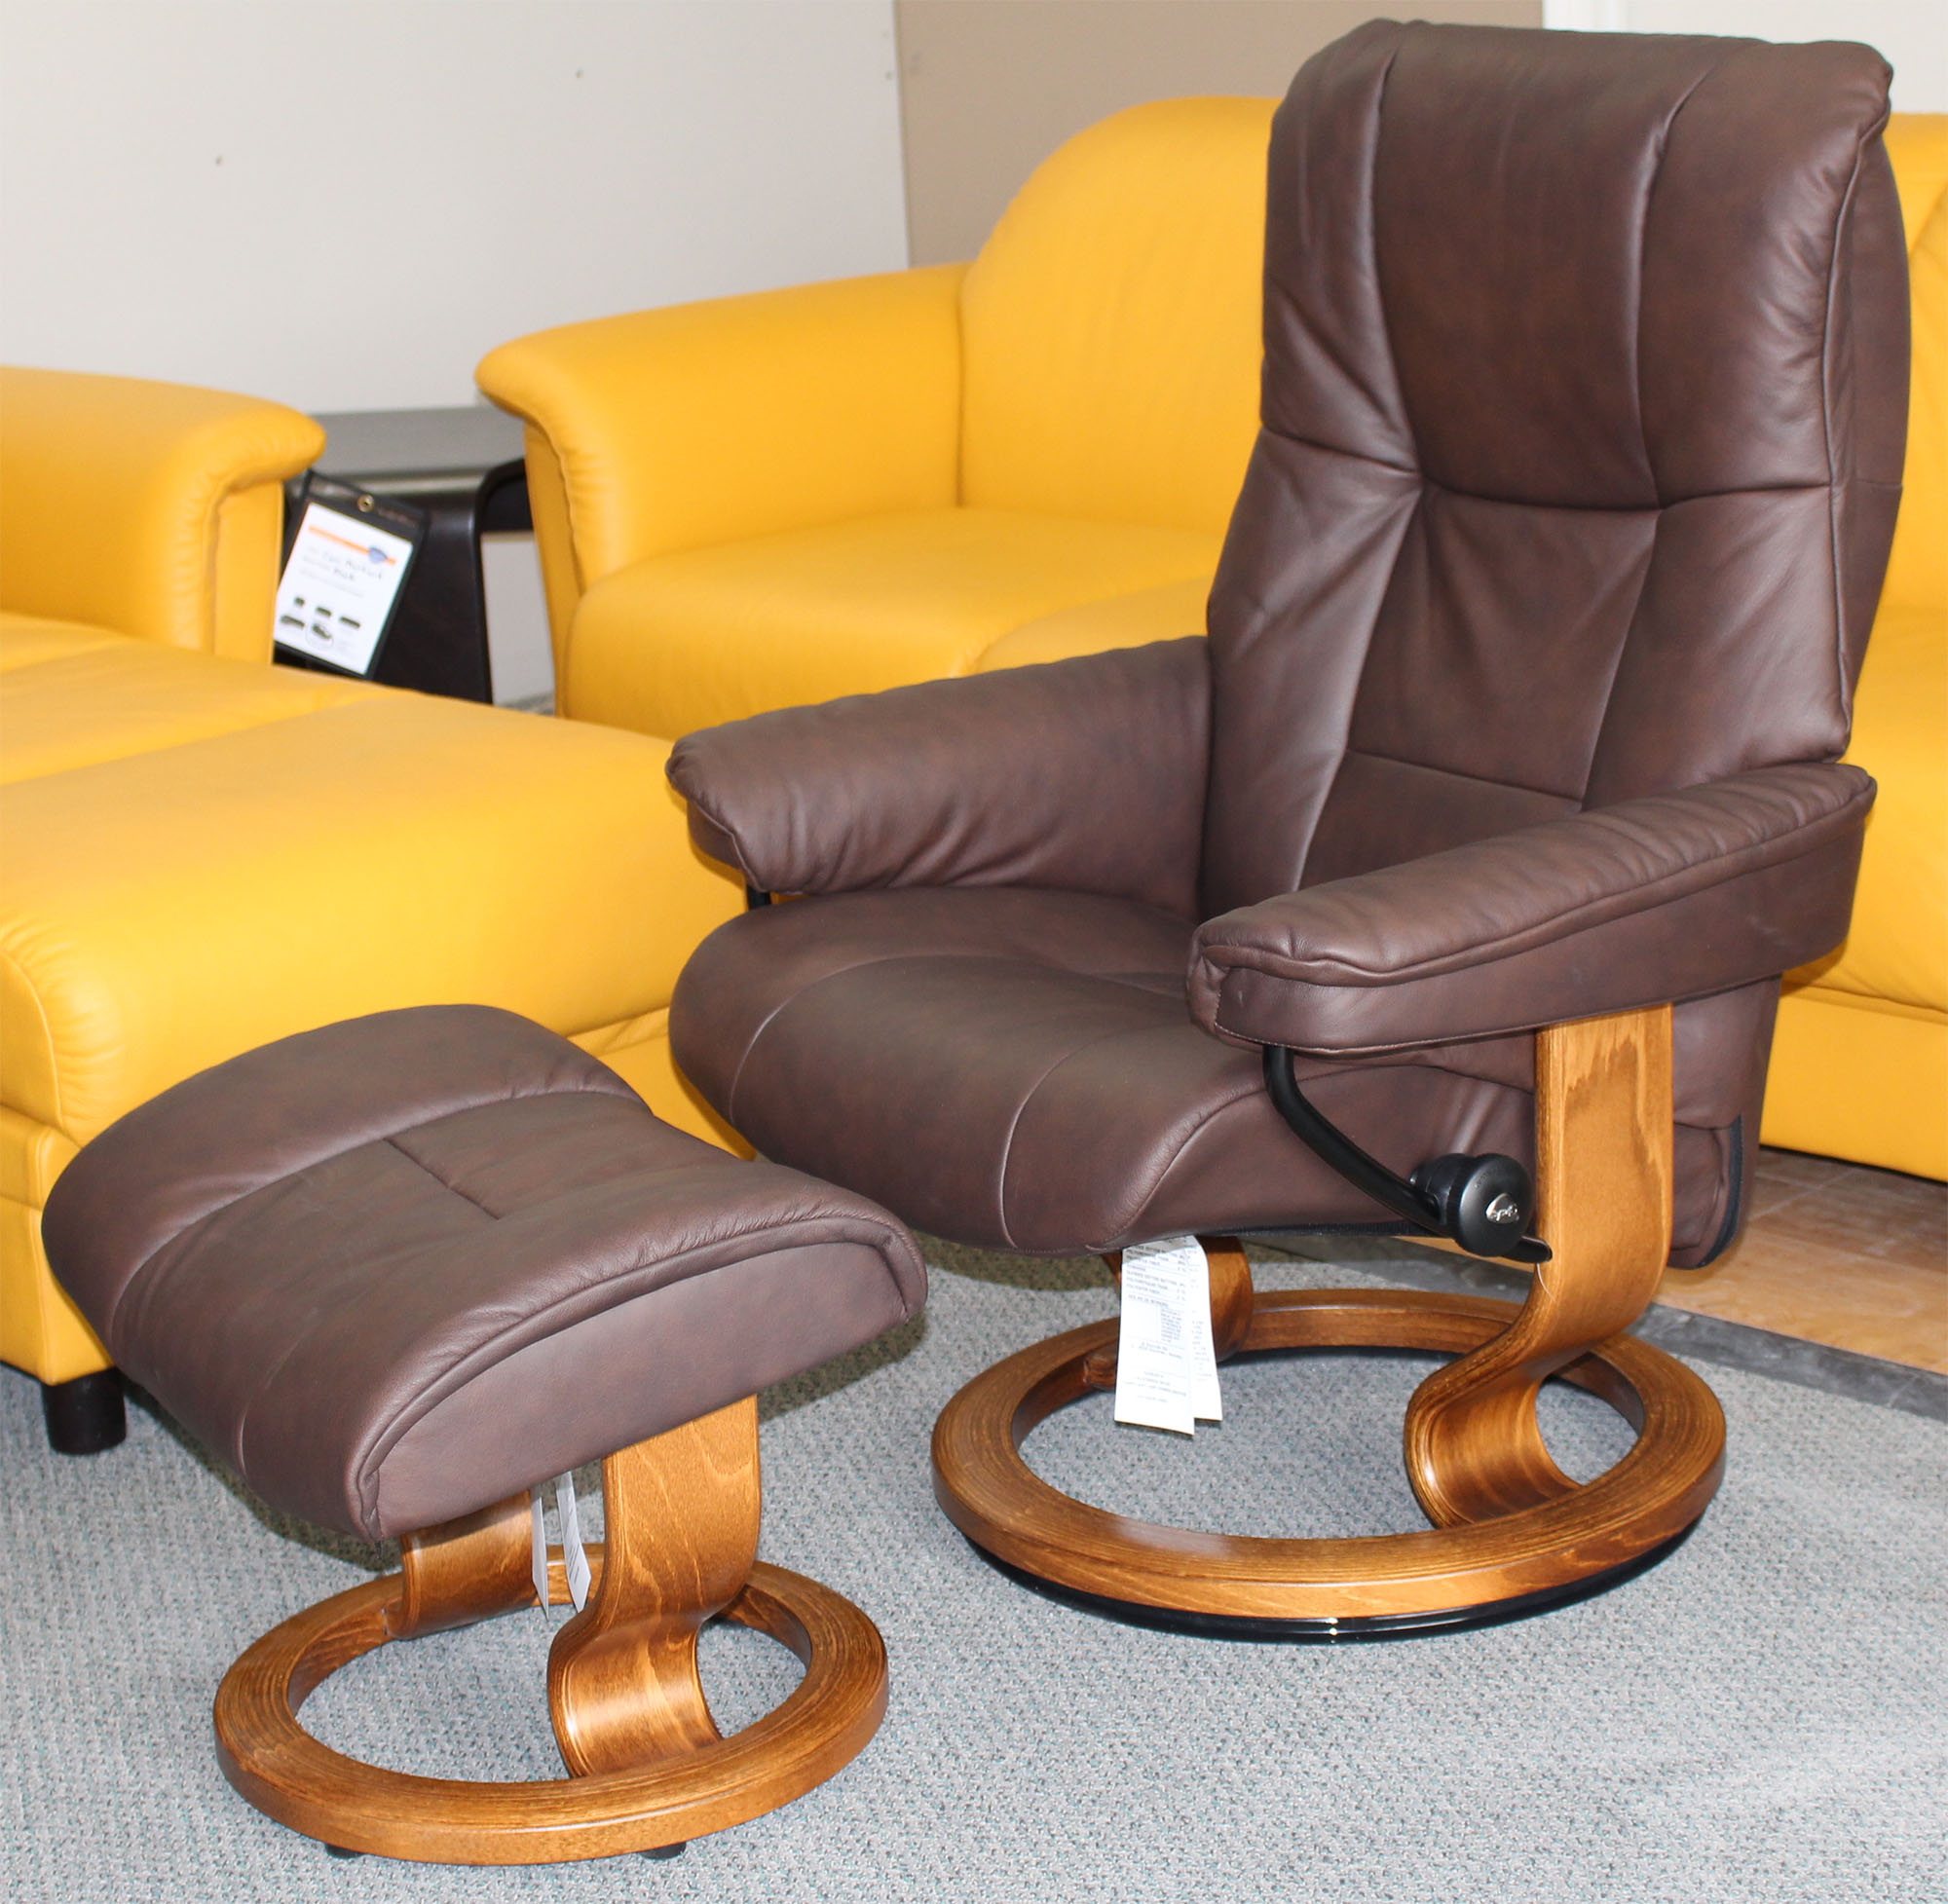 today grain garden italian overstock madison premium recliner shipping free leather top product chair brown home